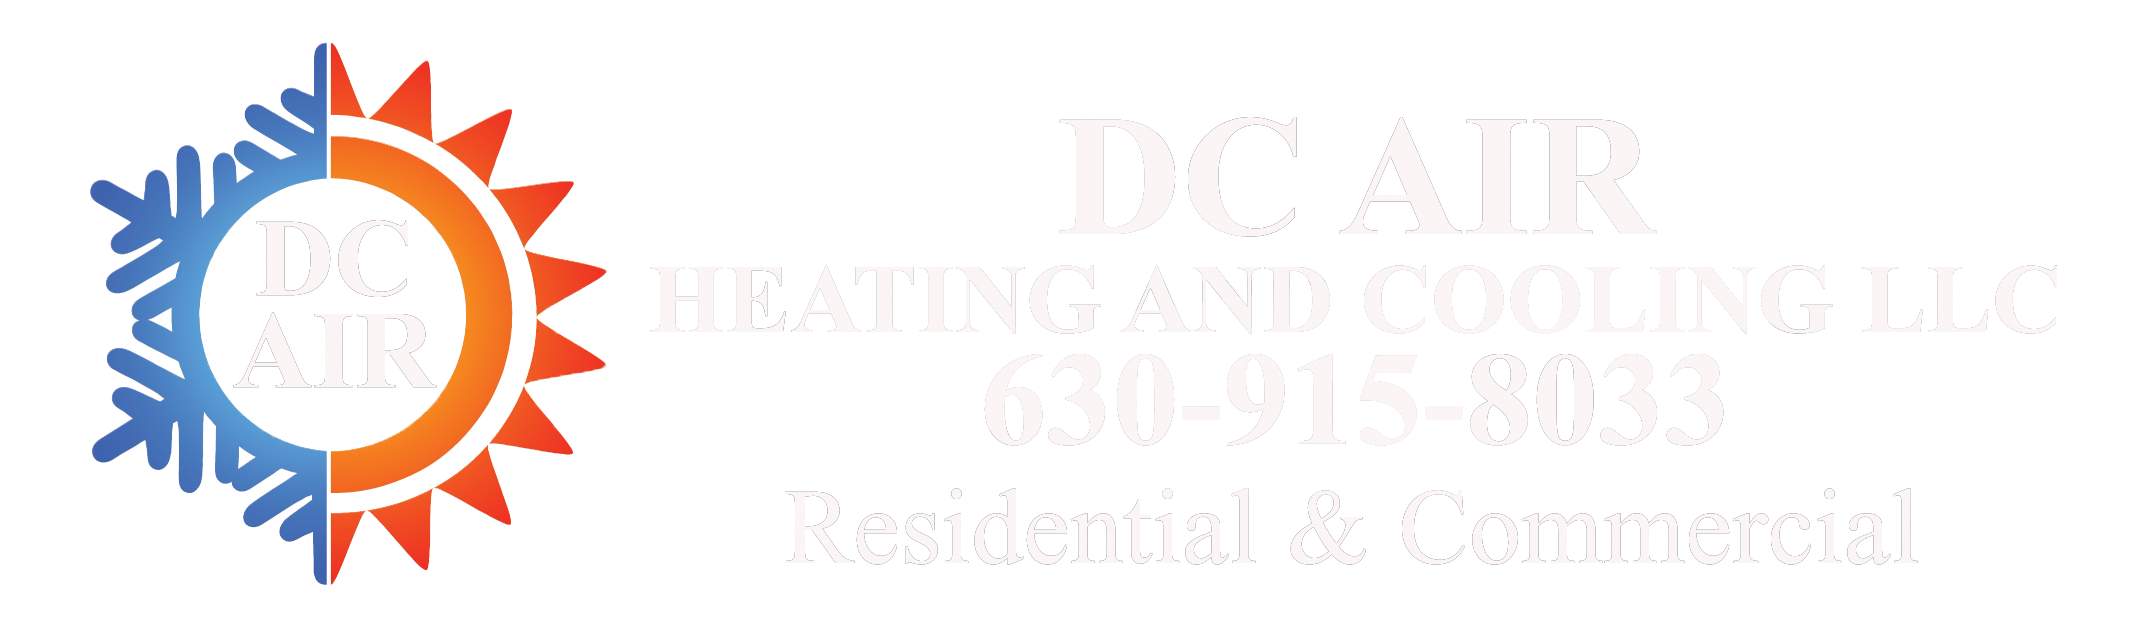 DC Air Heating and Cooling, LLC Logo